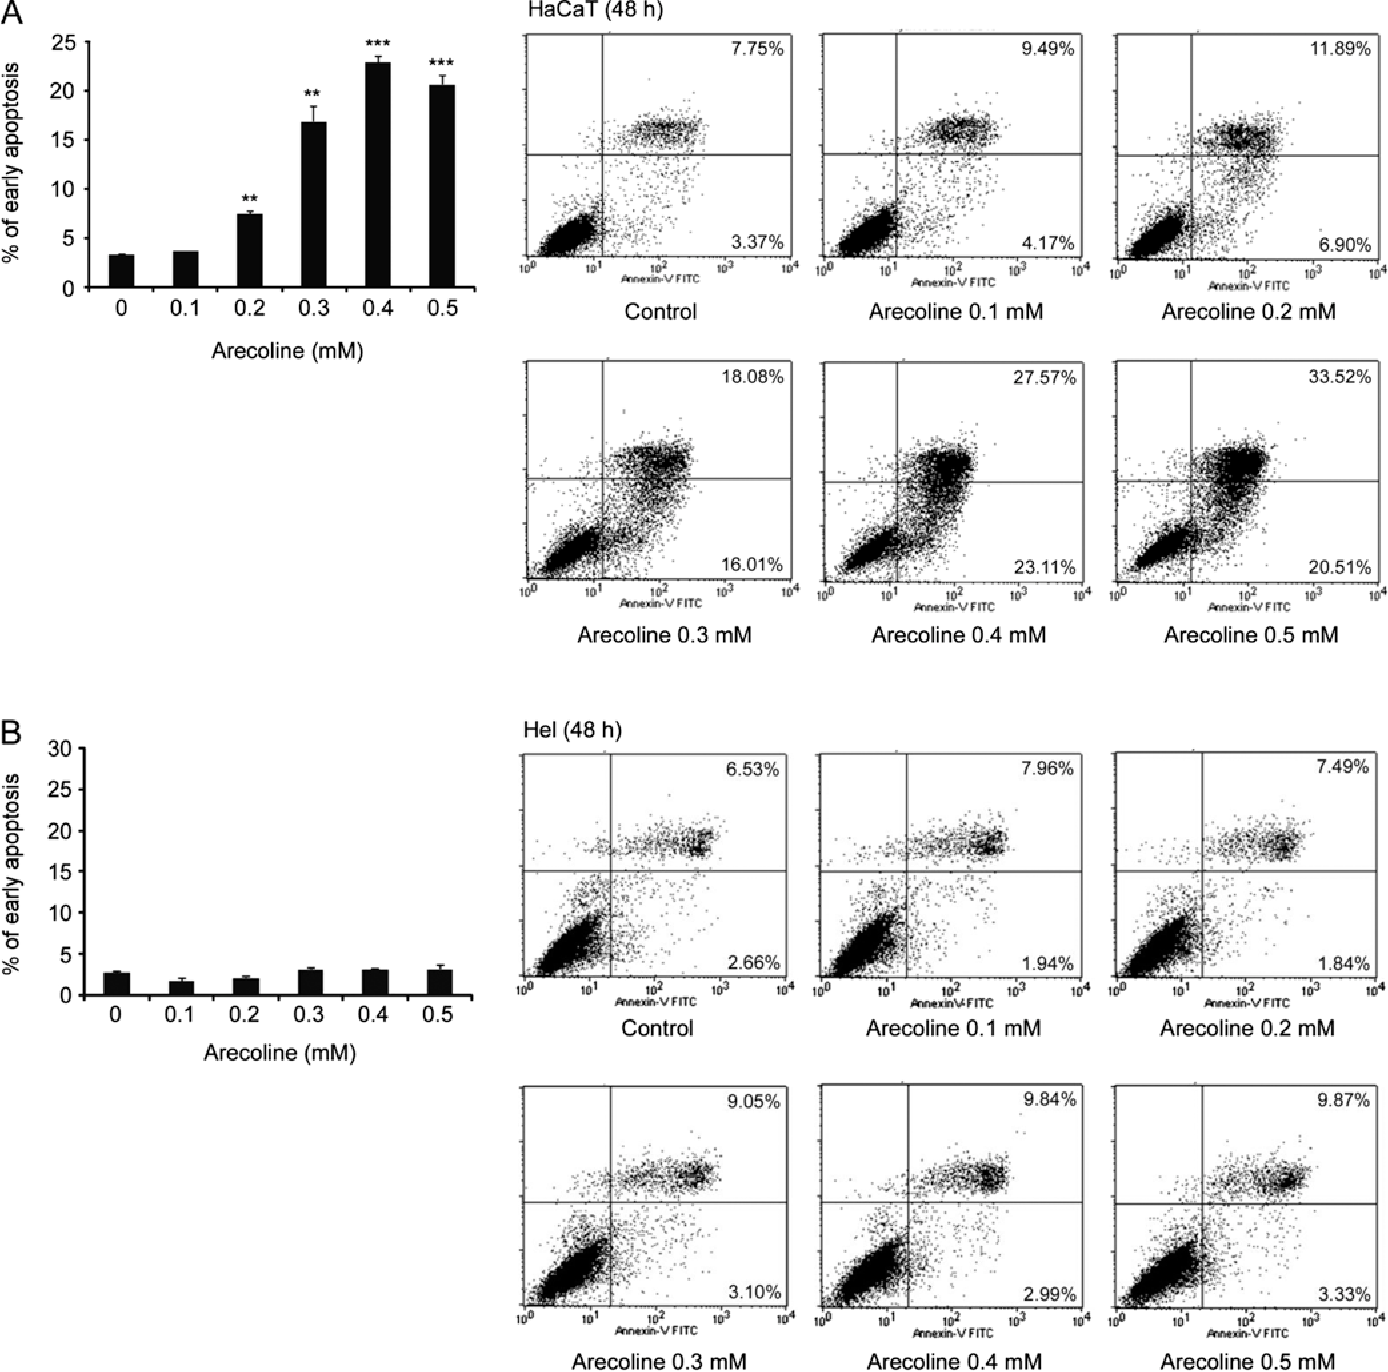 Figure 4. Arecoline-induced apoptosis in HaCaT and Hel cells. (A) Arecoline dose-dependently induced the apoptosis of HaCaT cells, (B) while arecoline did not induce apoptosis in the Hel cells. Cells were exposed or not to the indicated concentrations of arecoline for 24 h. The percentages of apoptotic cells were determined by flow cytometry as described in Materials and methods. Data are shown as means ± SD of three independent experiments. *P<0.05, **P<0.01 or ***P<0.001 indicates a significant upregulation of early apoptosis in cells treated with arecoline compared with the untreated control.